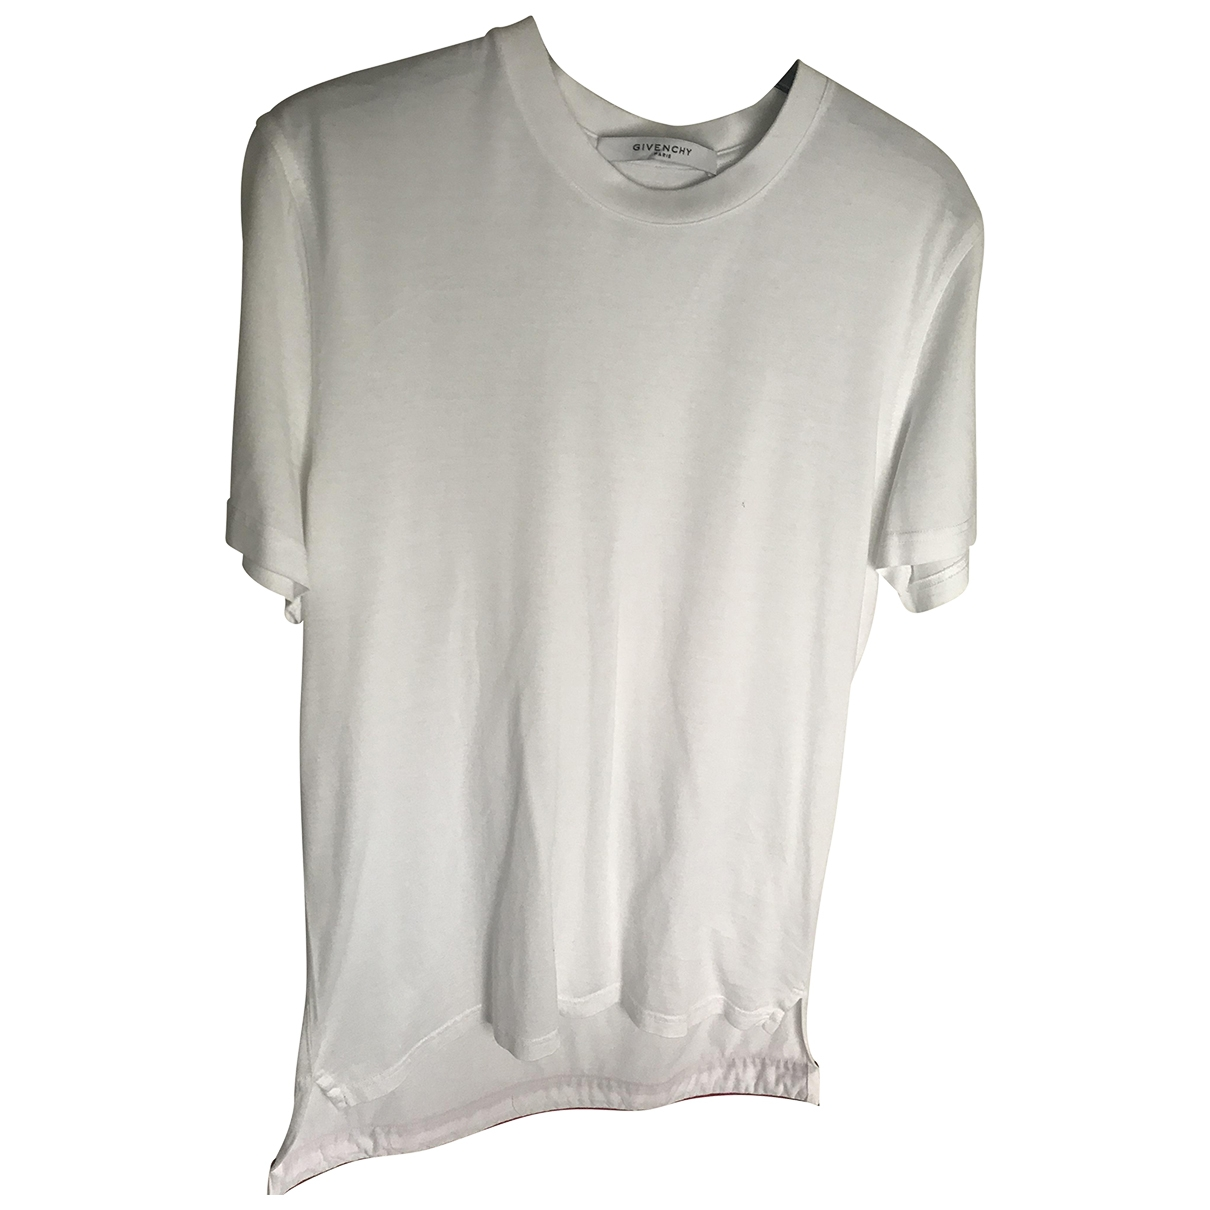 Givenchy \N White Cotton T-shirts for Men S International